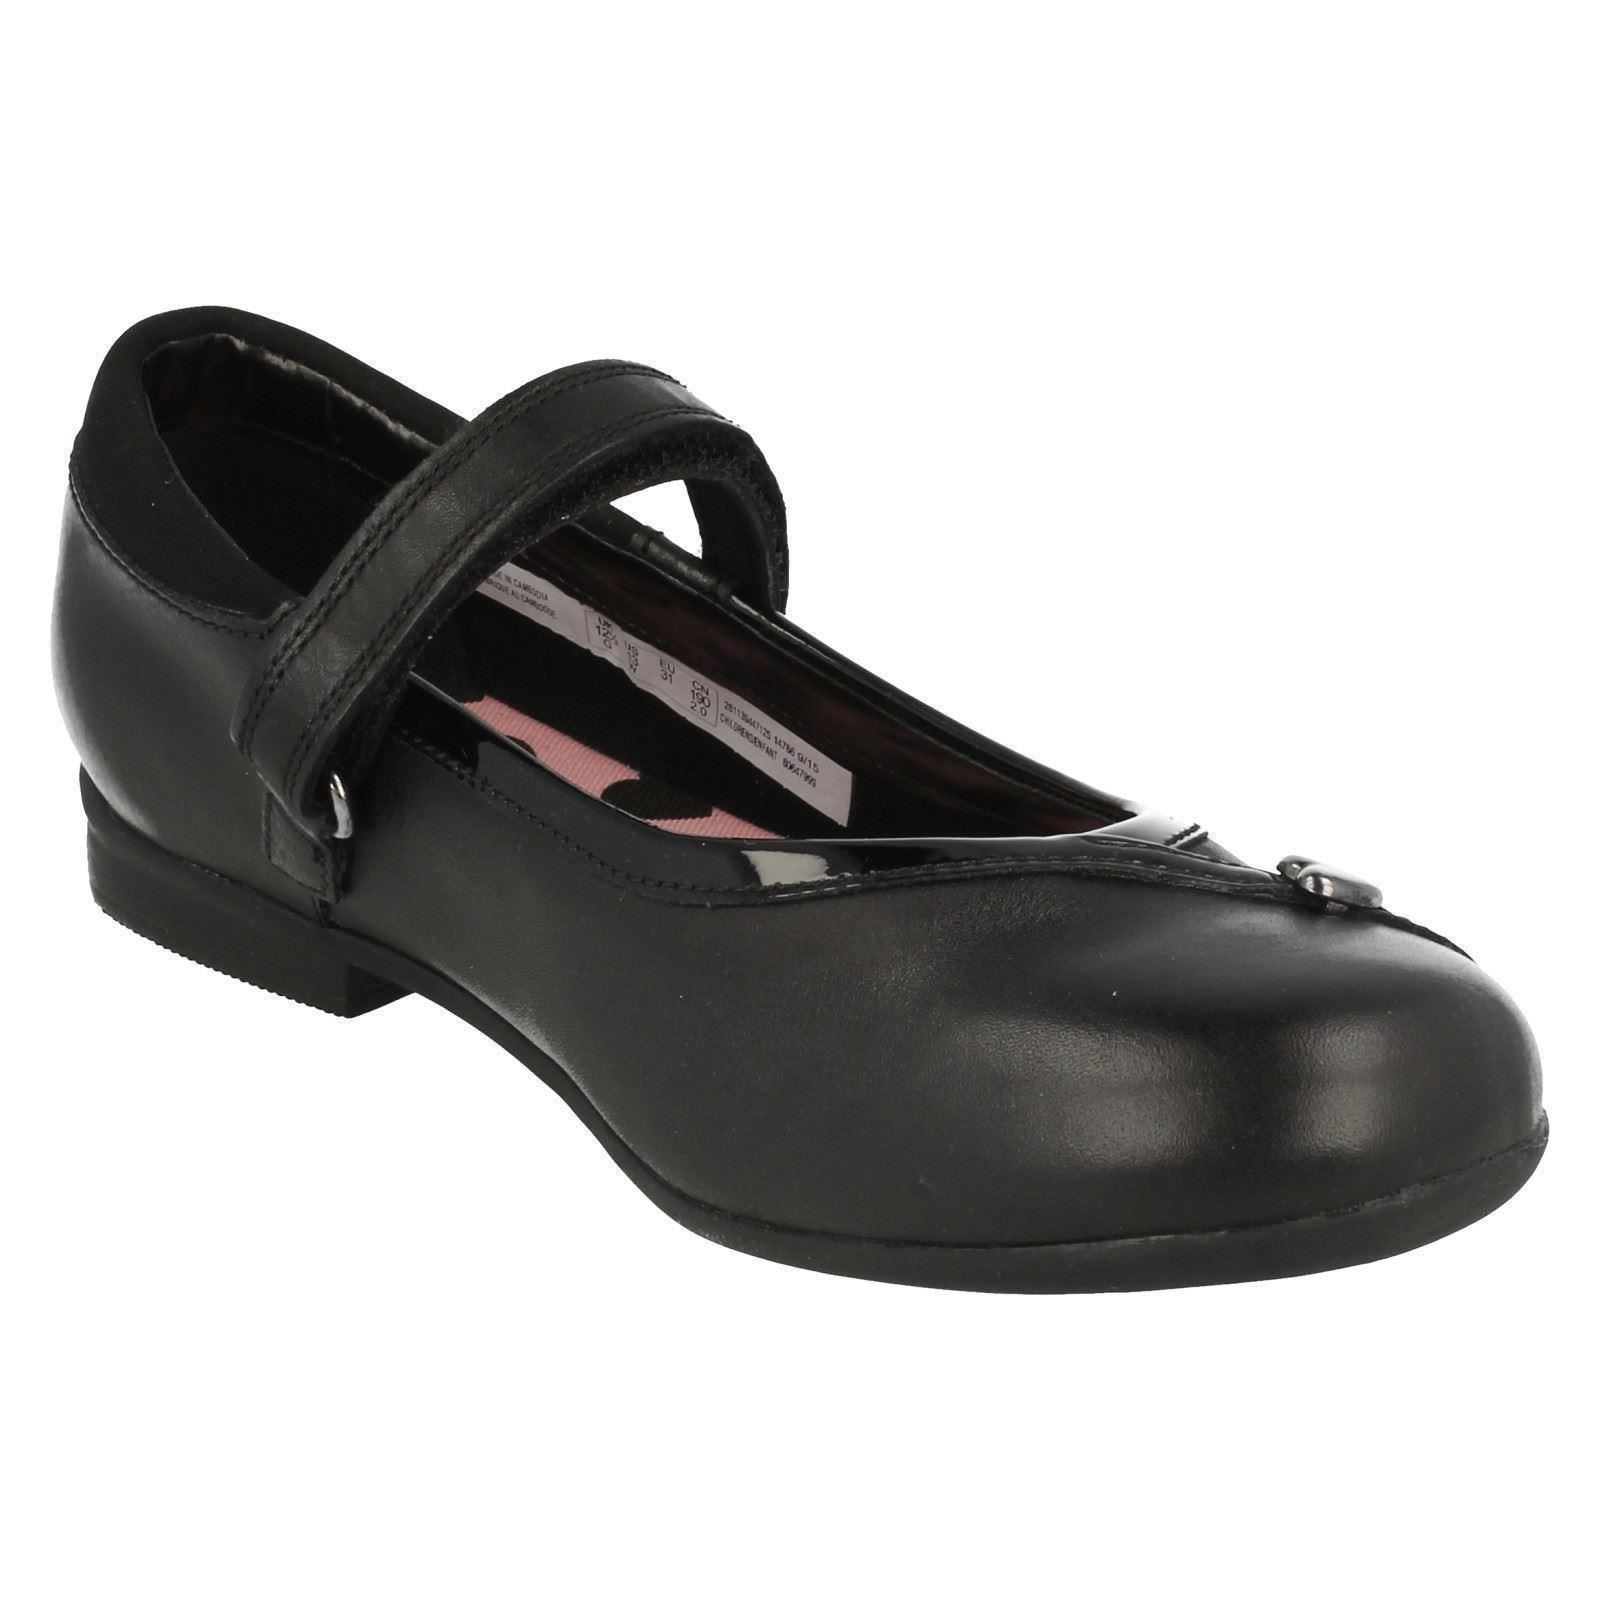 Girls Clarks Smart School Shoes Movello Lo Kids' Clothes, Shoes & Accs. Girls' Shoes